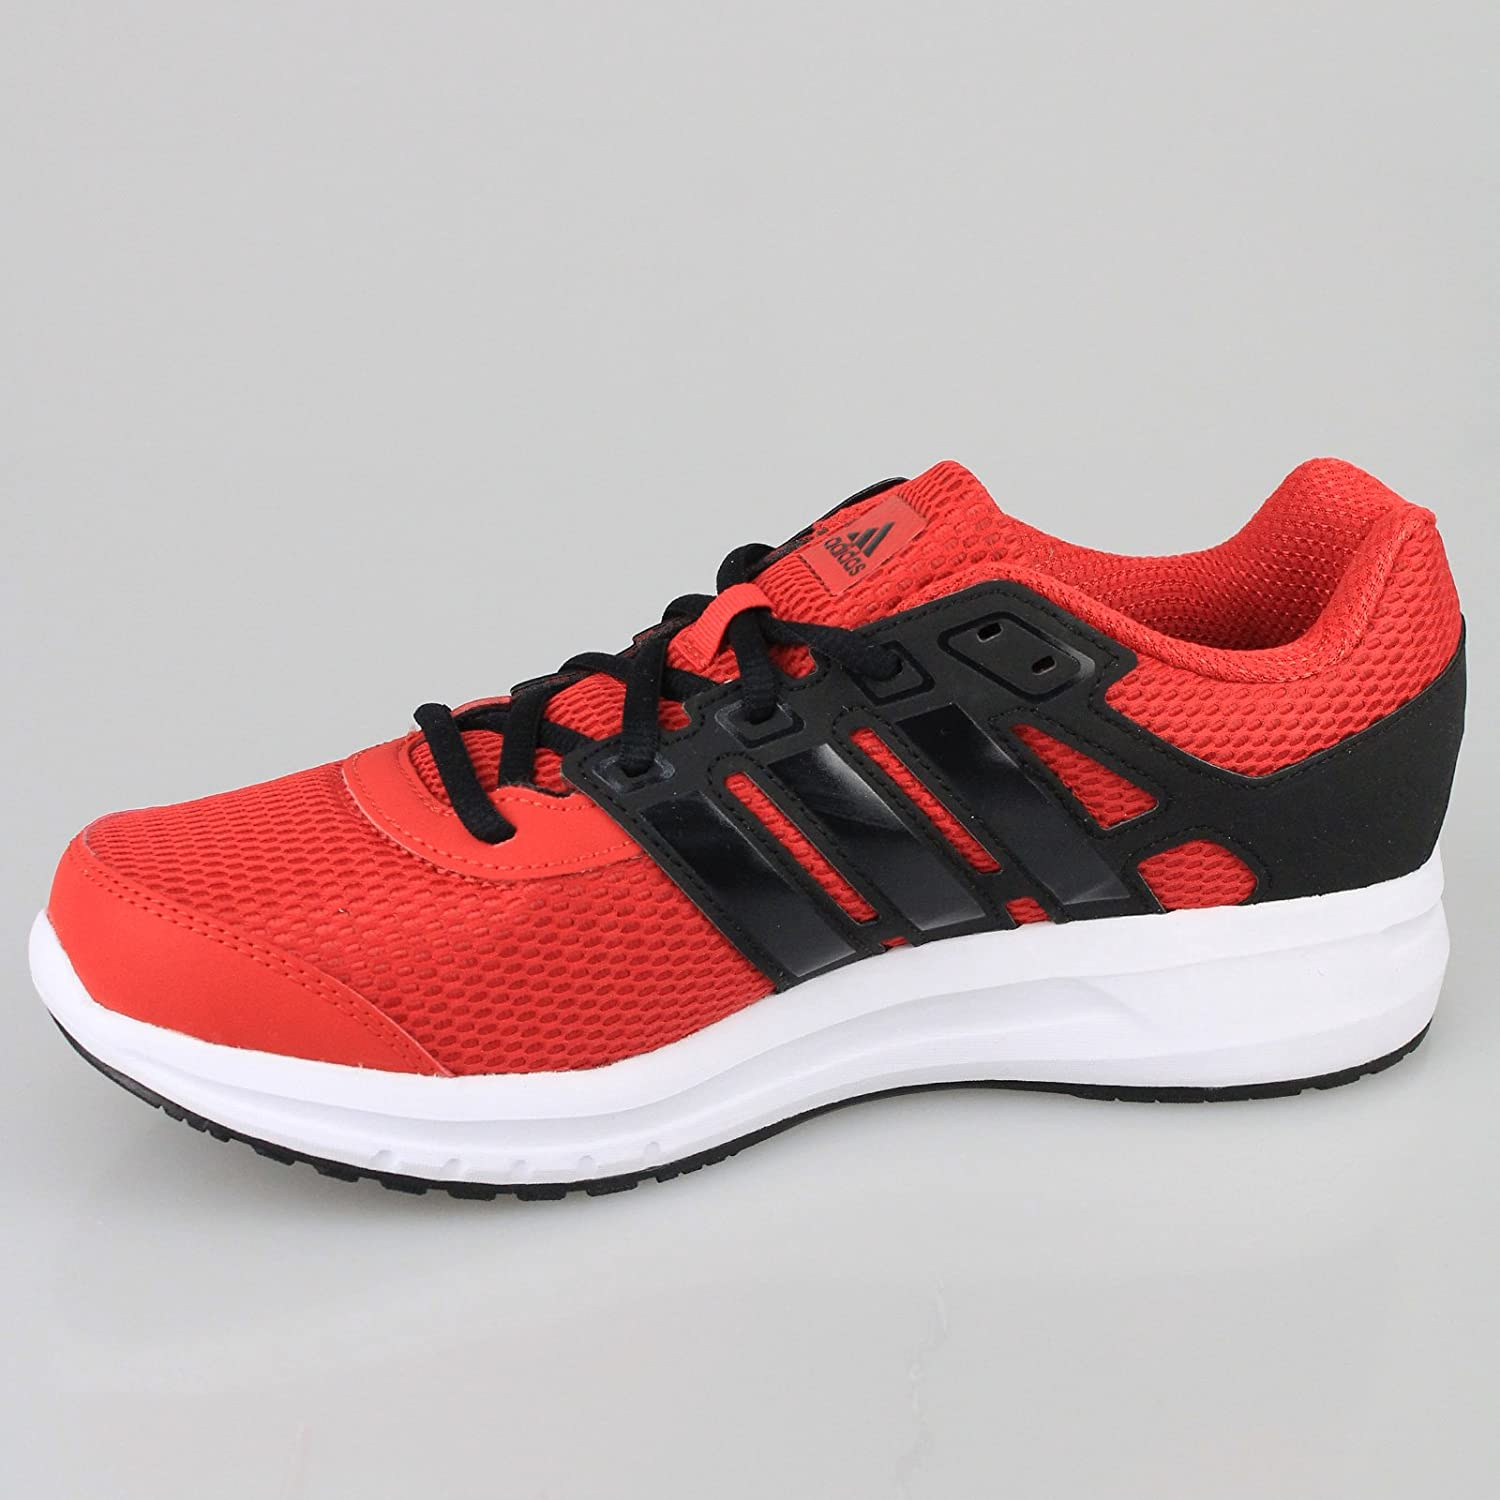 f6ed4f491 adidas Performance Men s Duramo Lite M Running Shoe